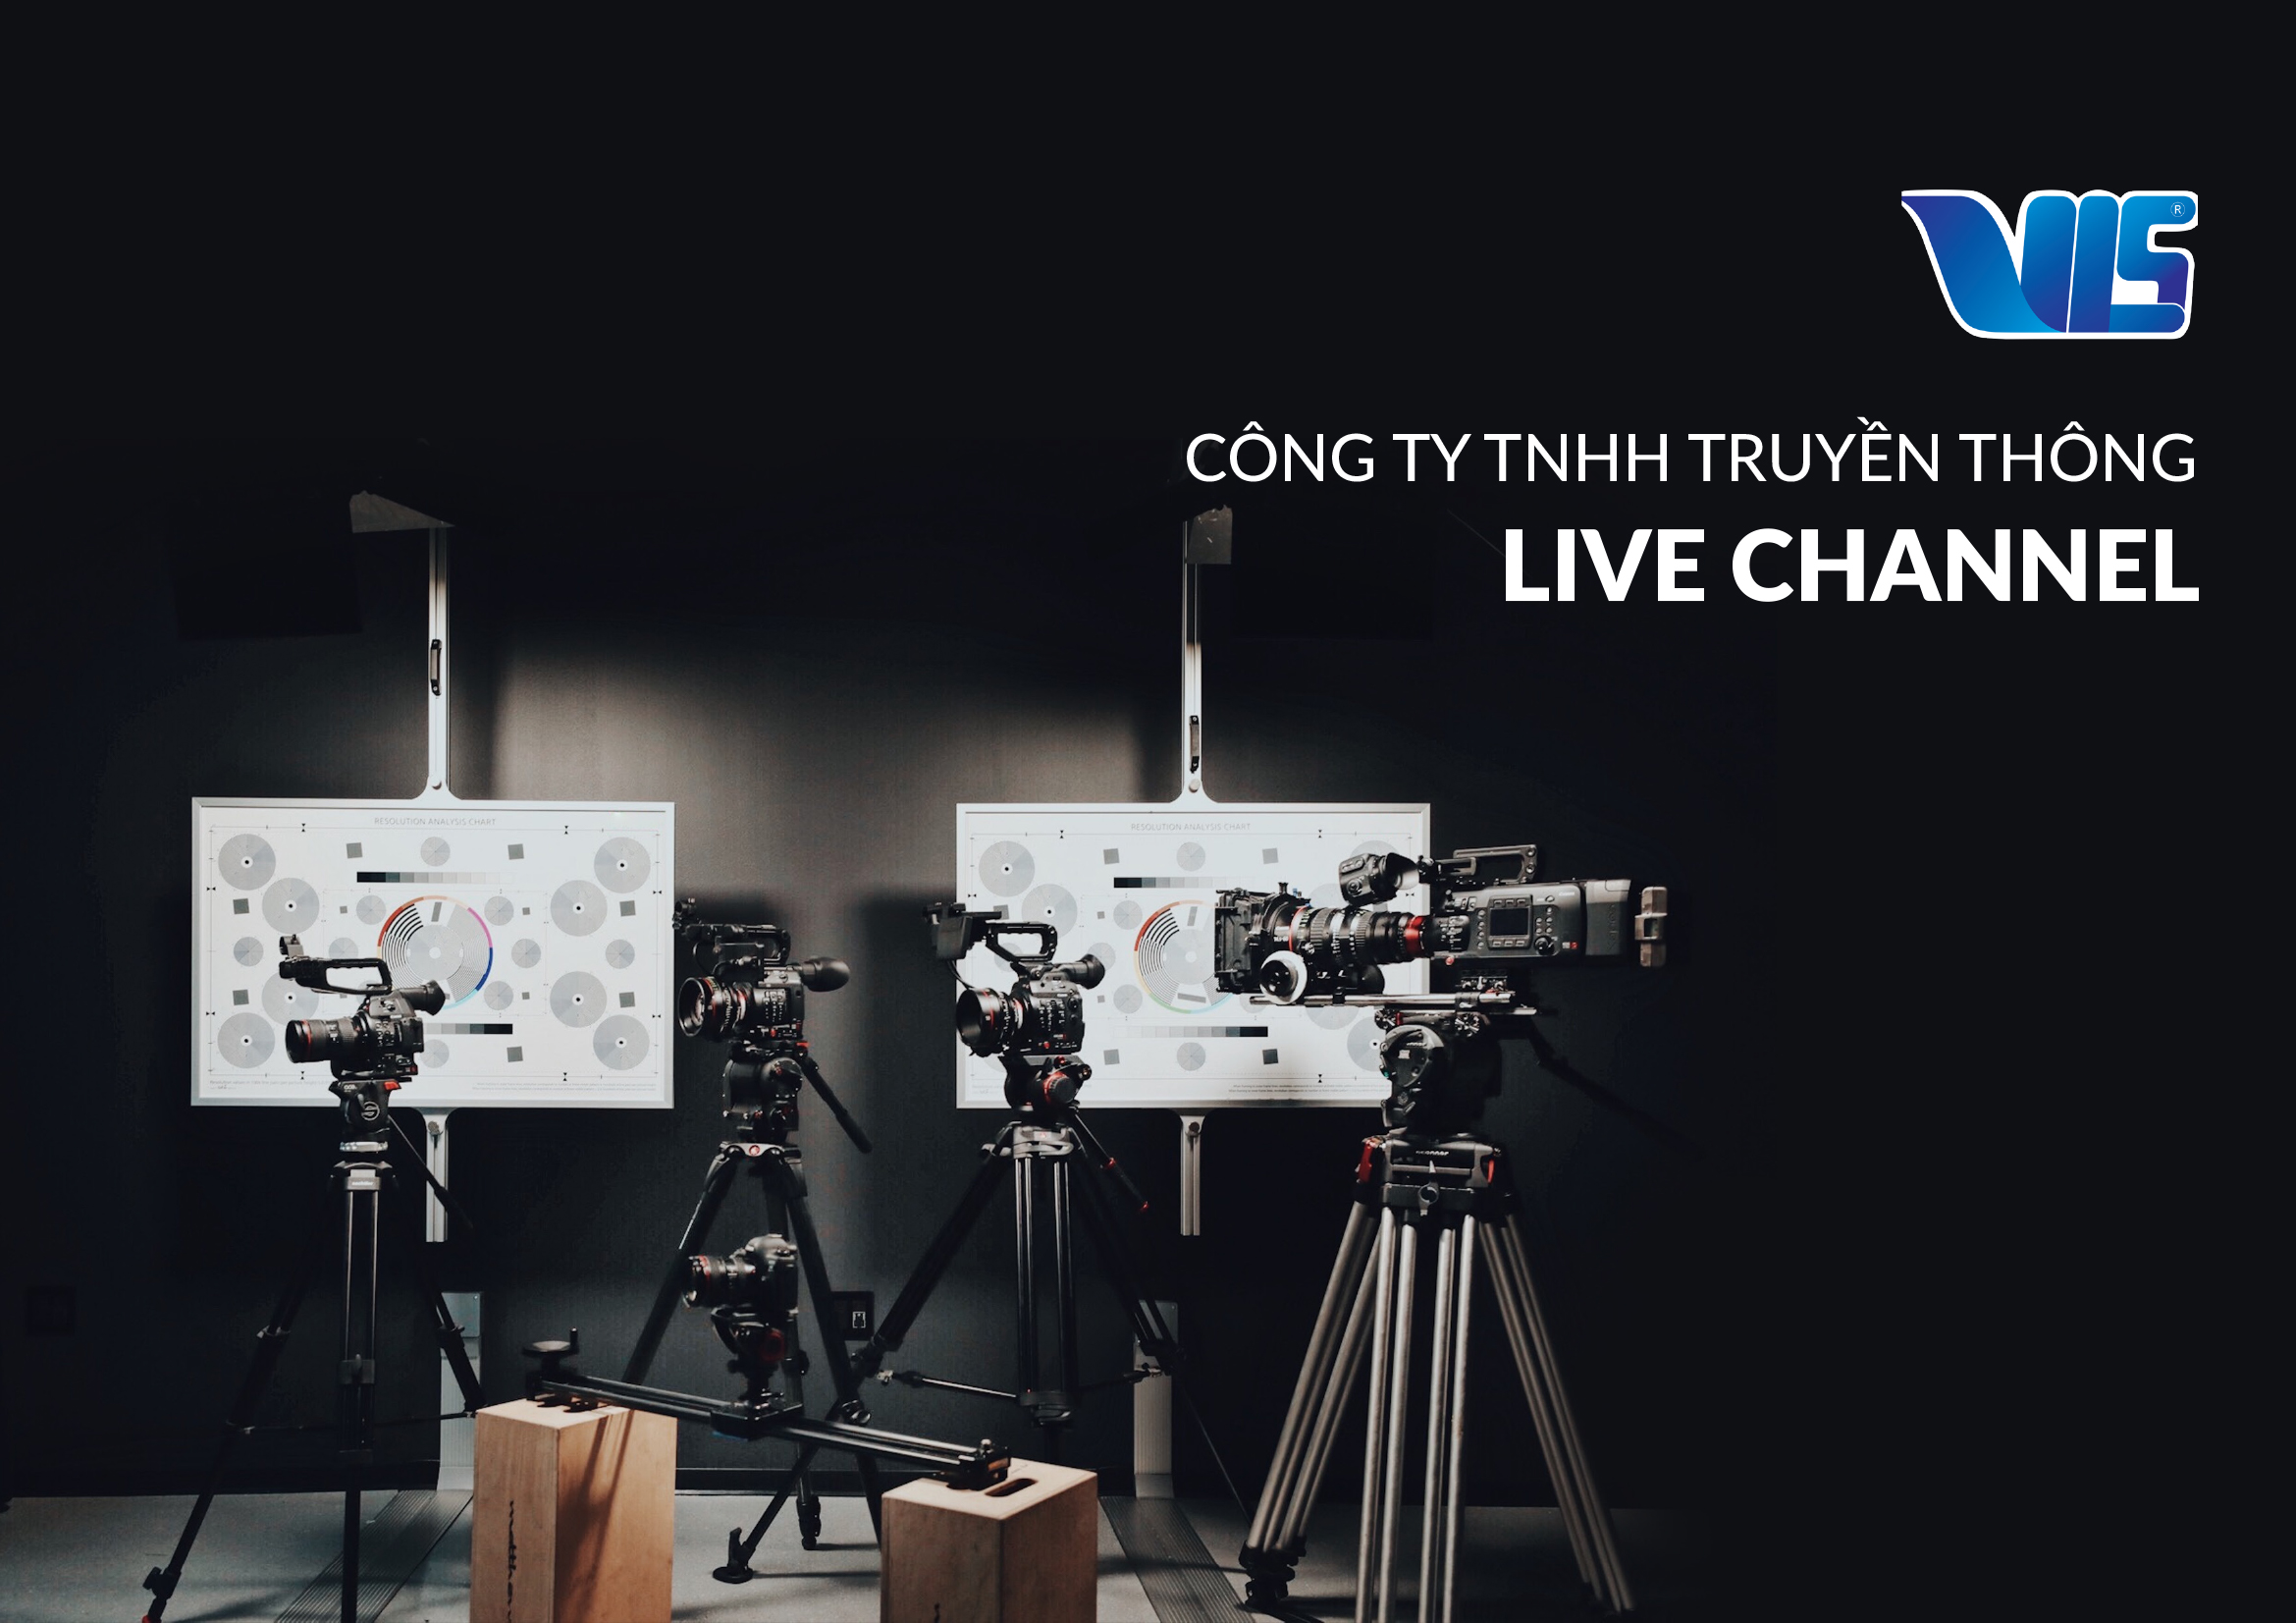 Dịch vụ livestream 05-he-thong-live-channel